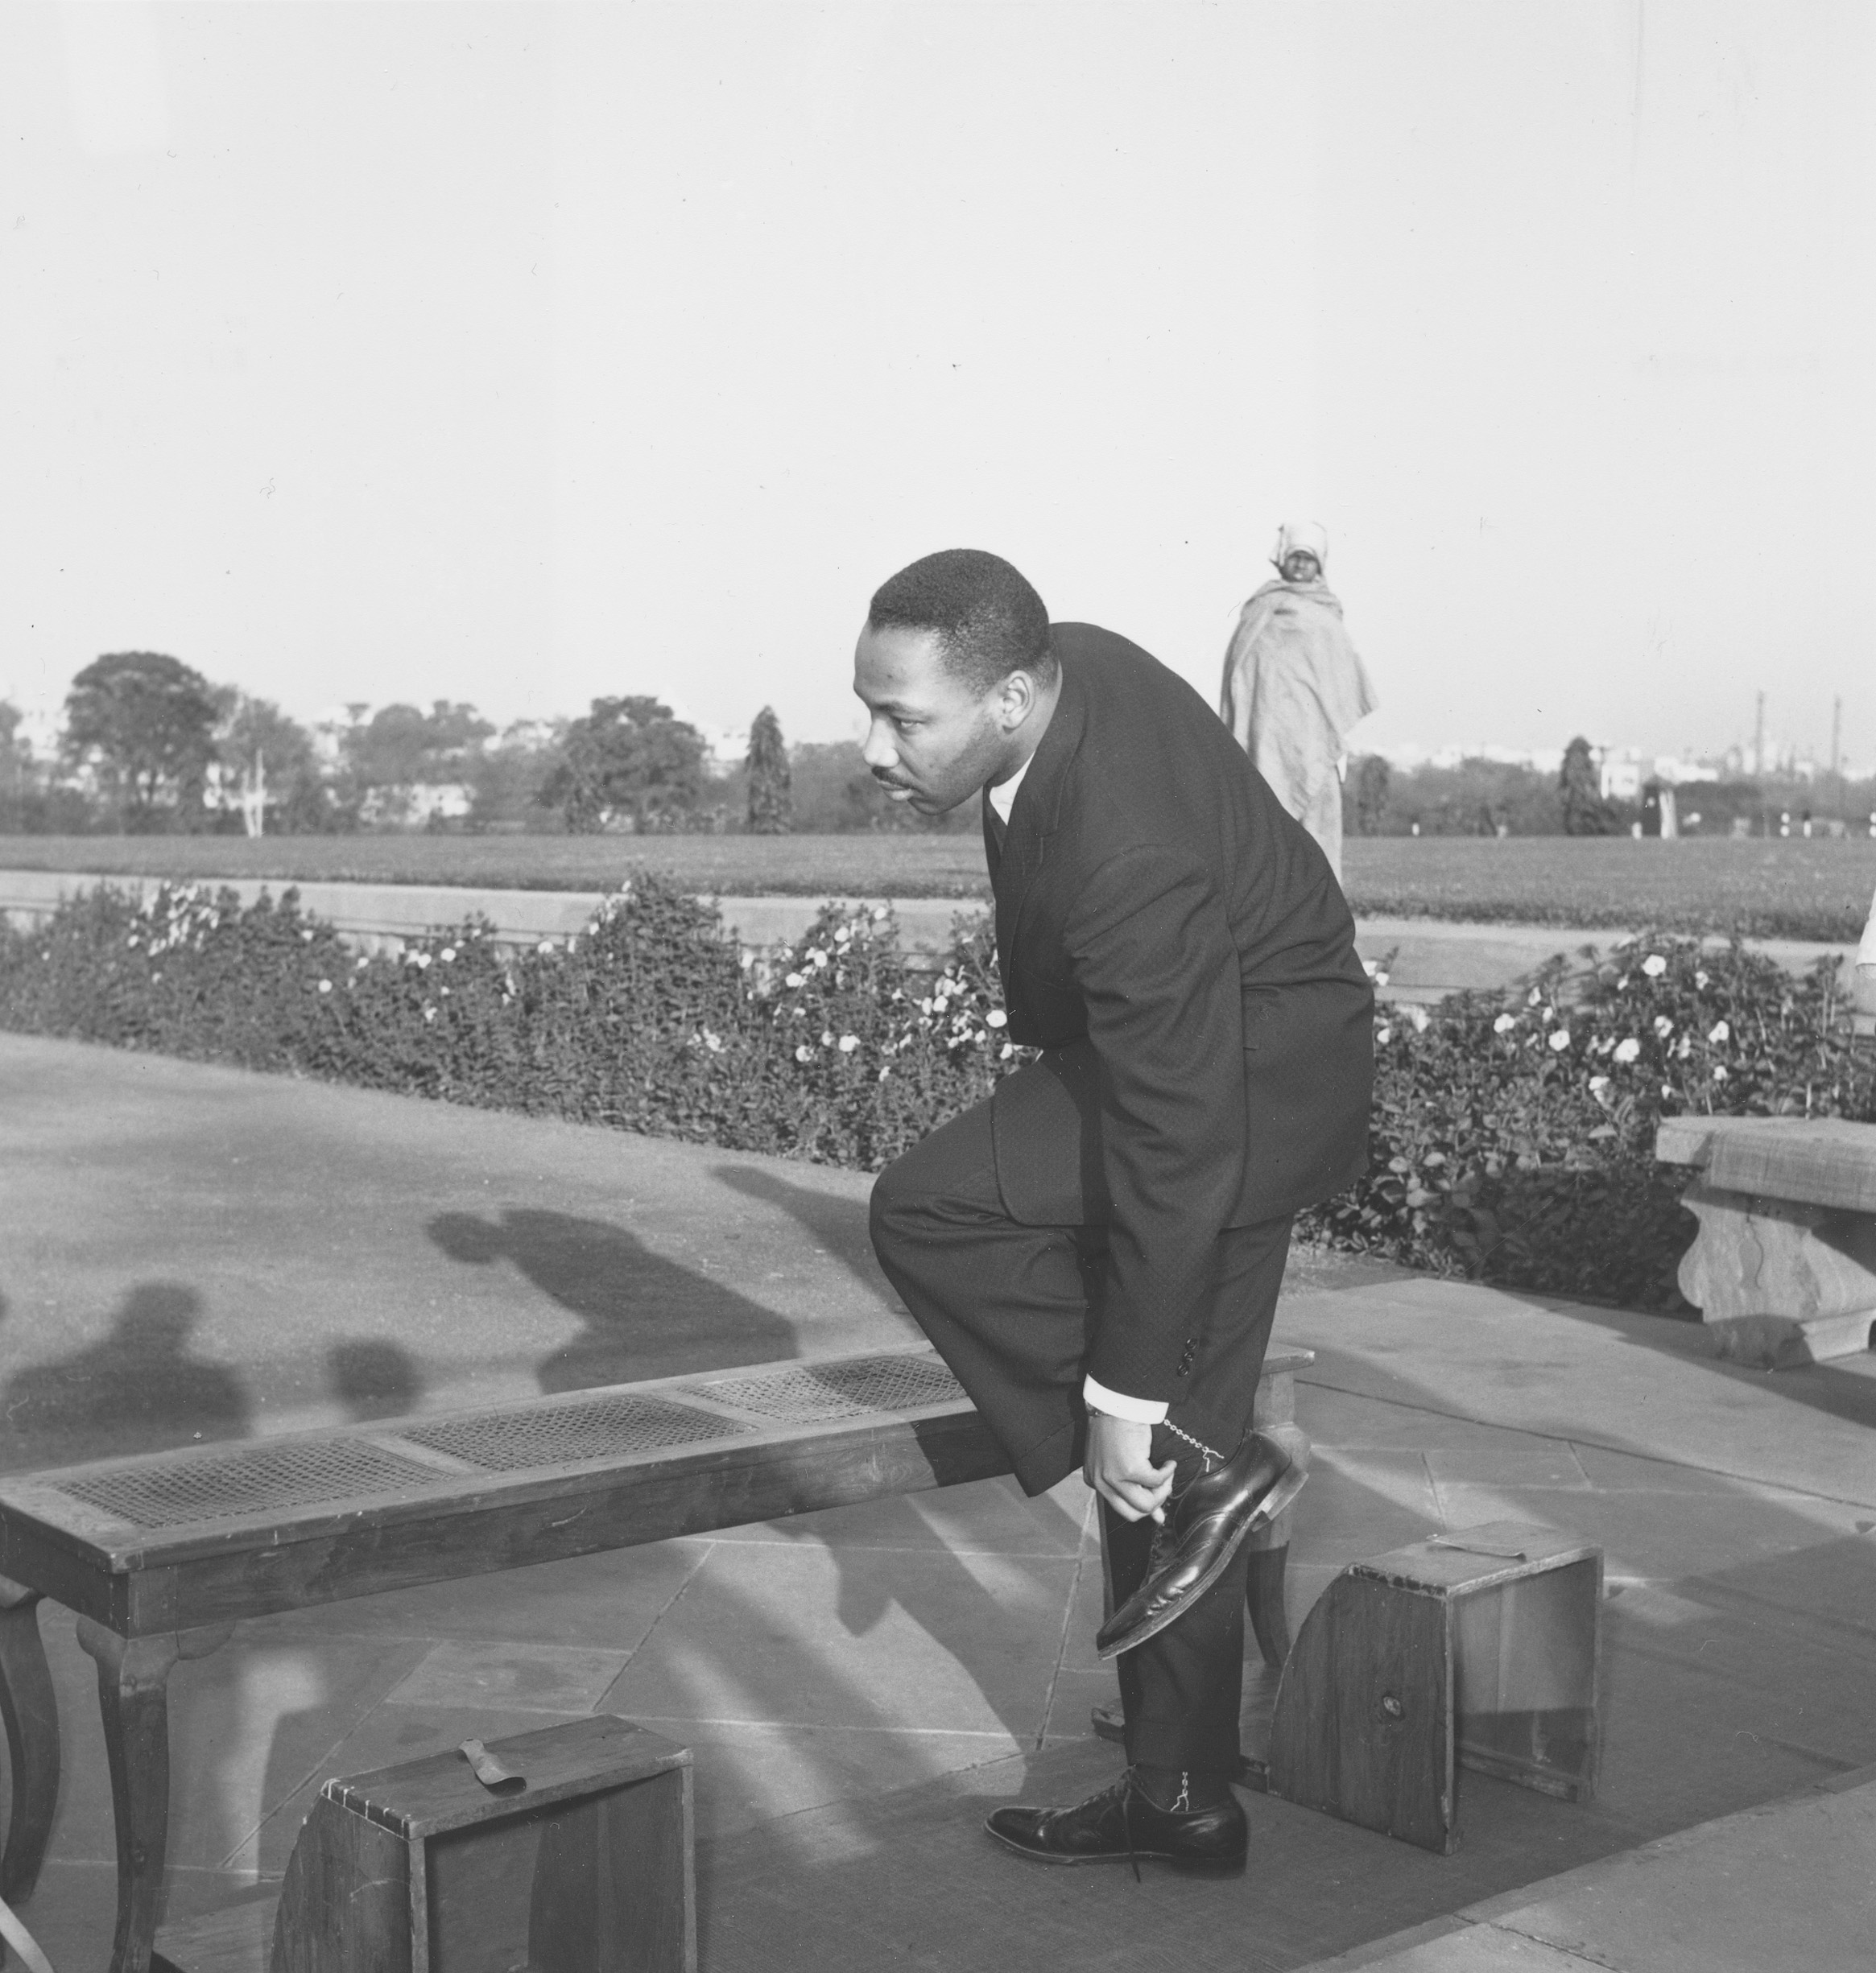 American civil rights leader Rev. Martin Luther King, Jr. removes his shoes before entering Mahatma Gandhi's shrine in New Delhi, India, Feb. 11, 1959. (AP Photo)